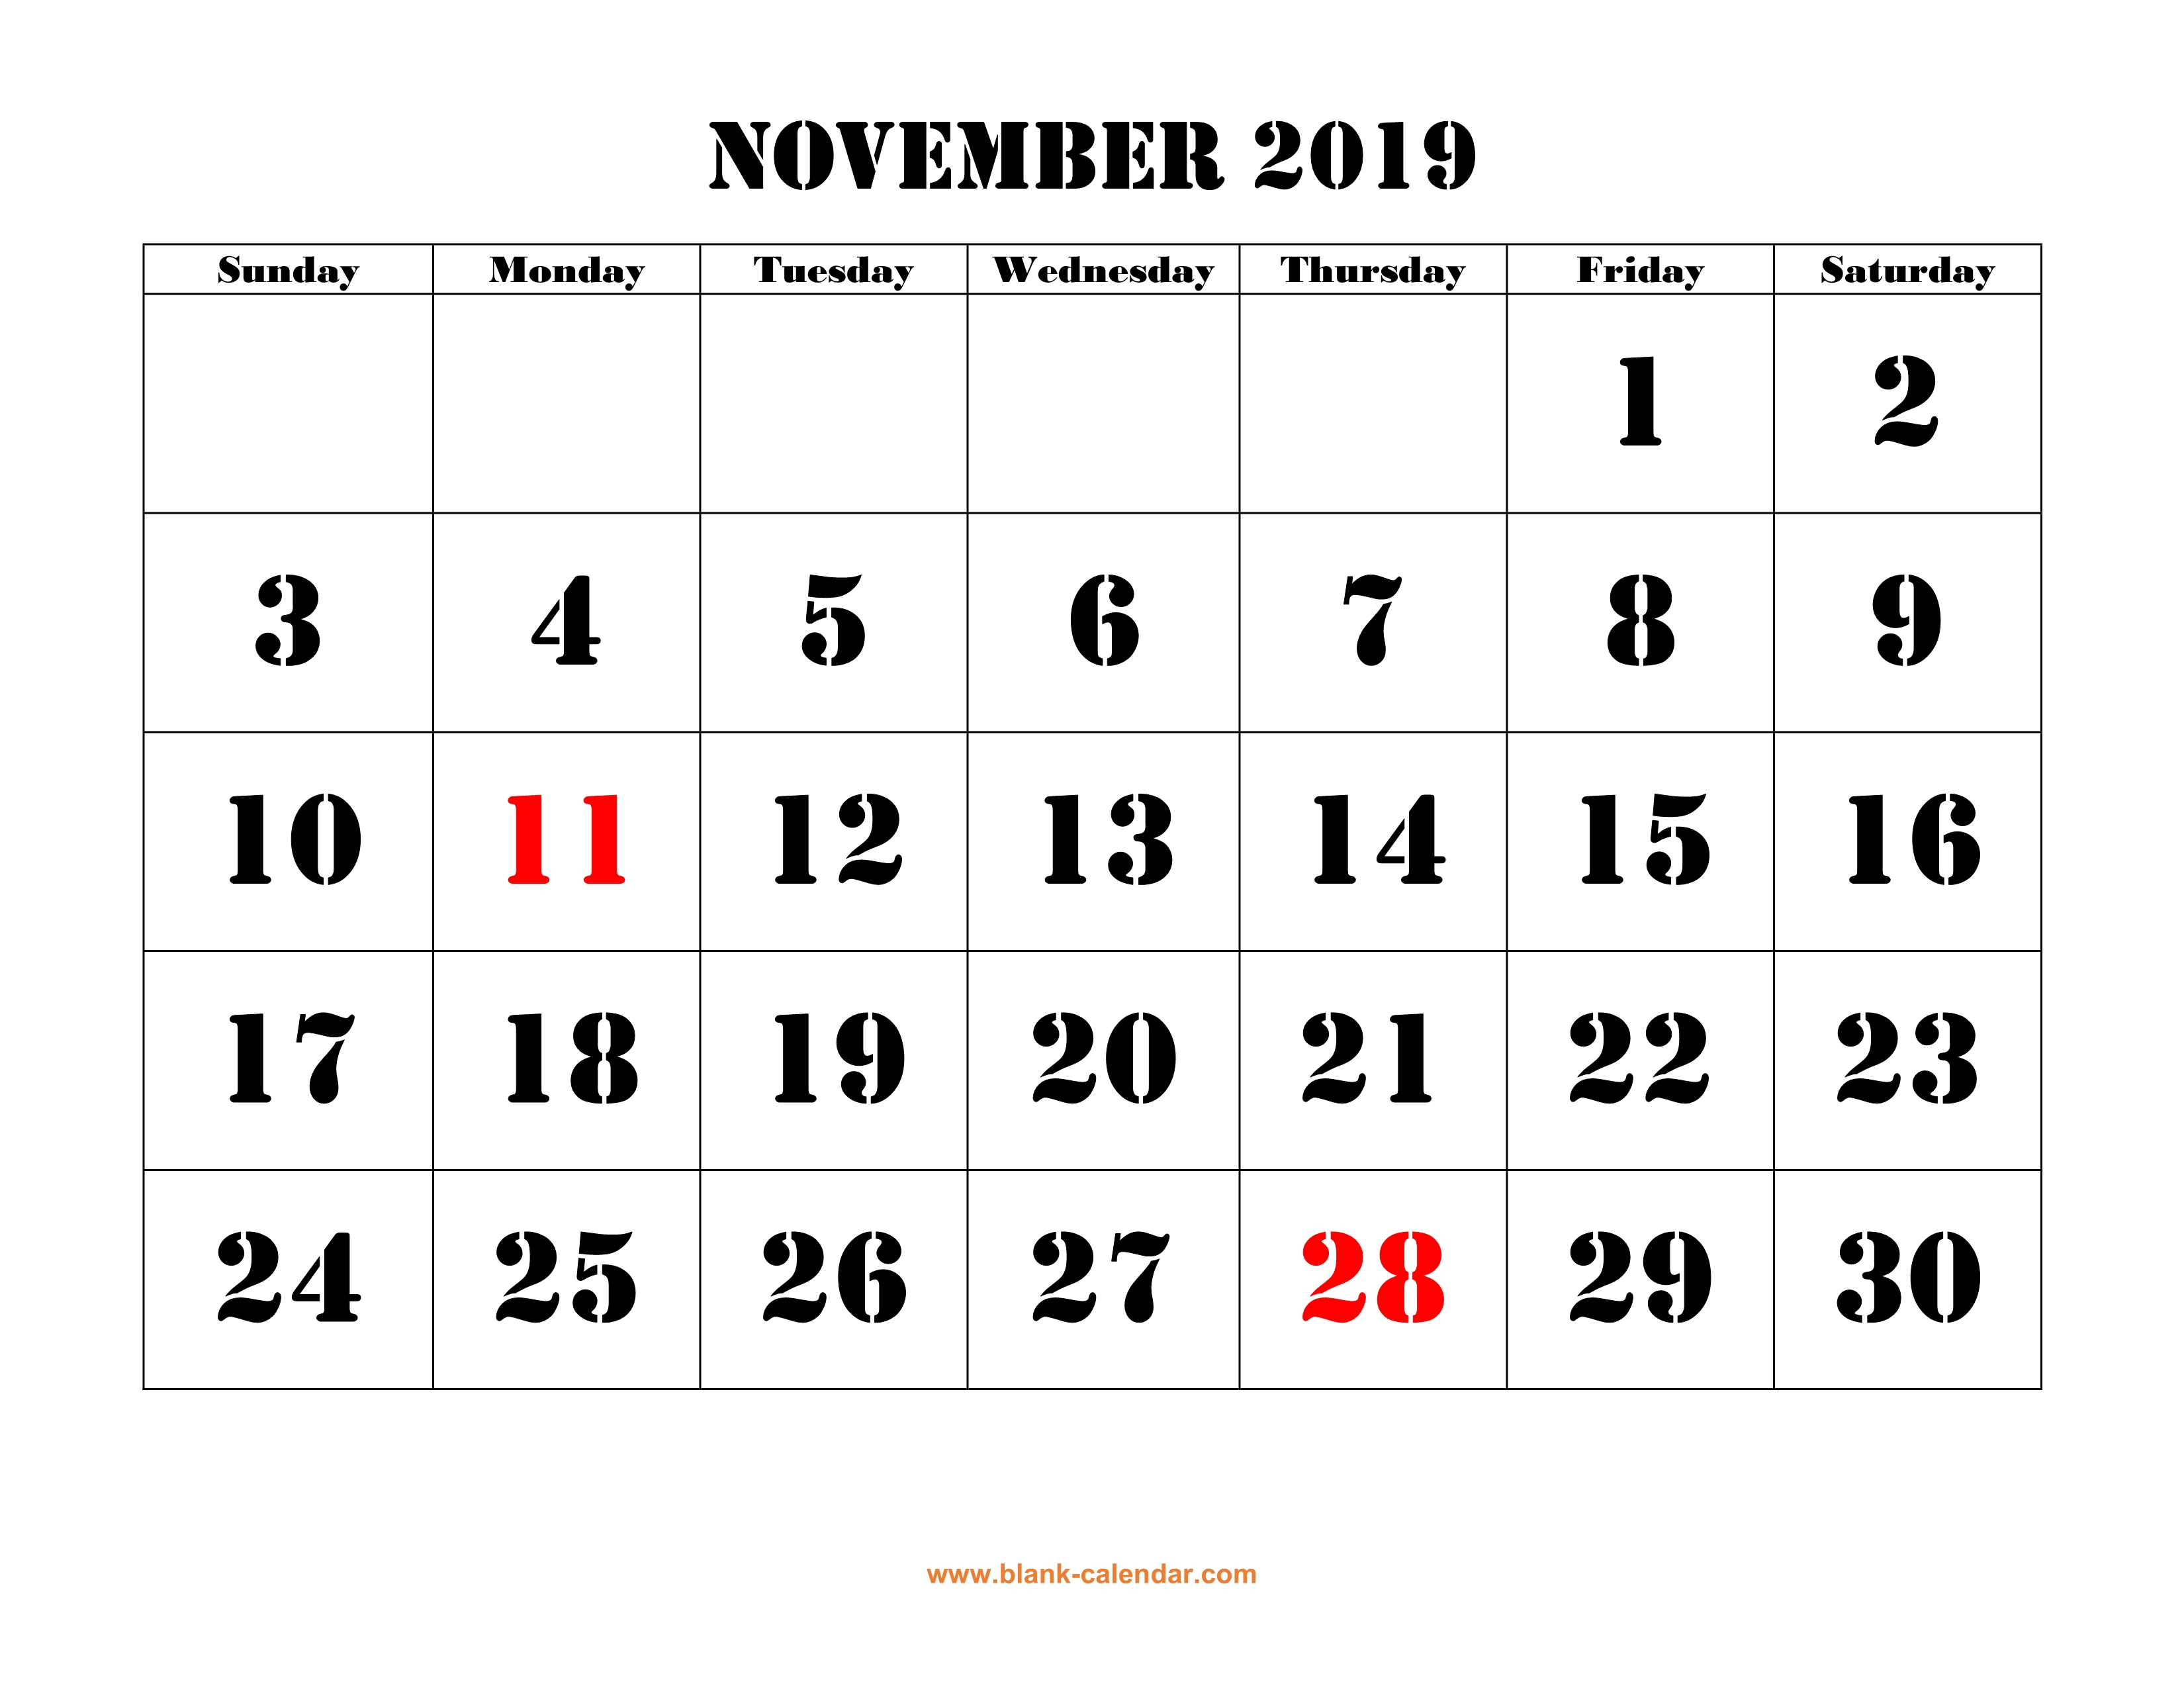 photograph relating to Calendar With Holidays Printable named Totally free Down load Printable November 2019 Calendar, substantial font